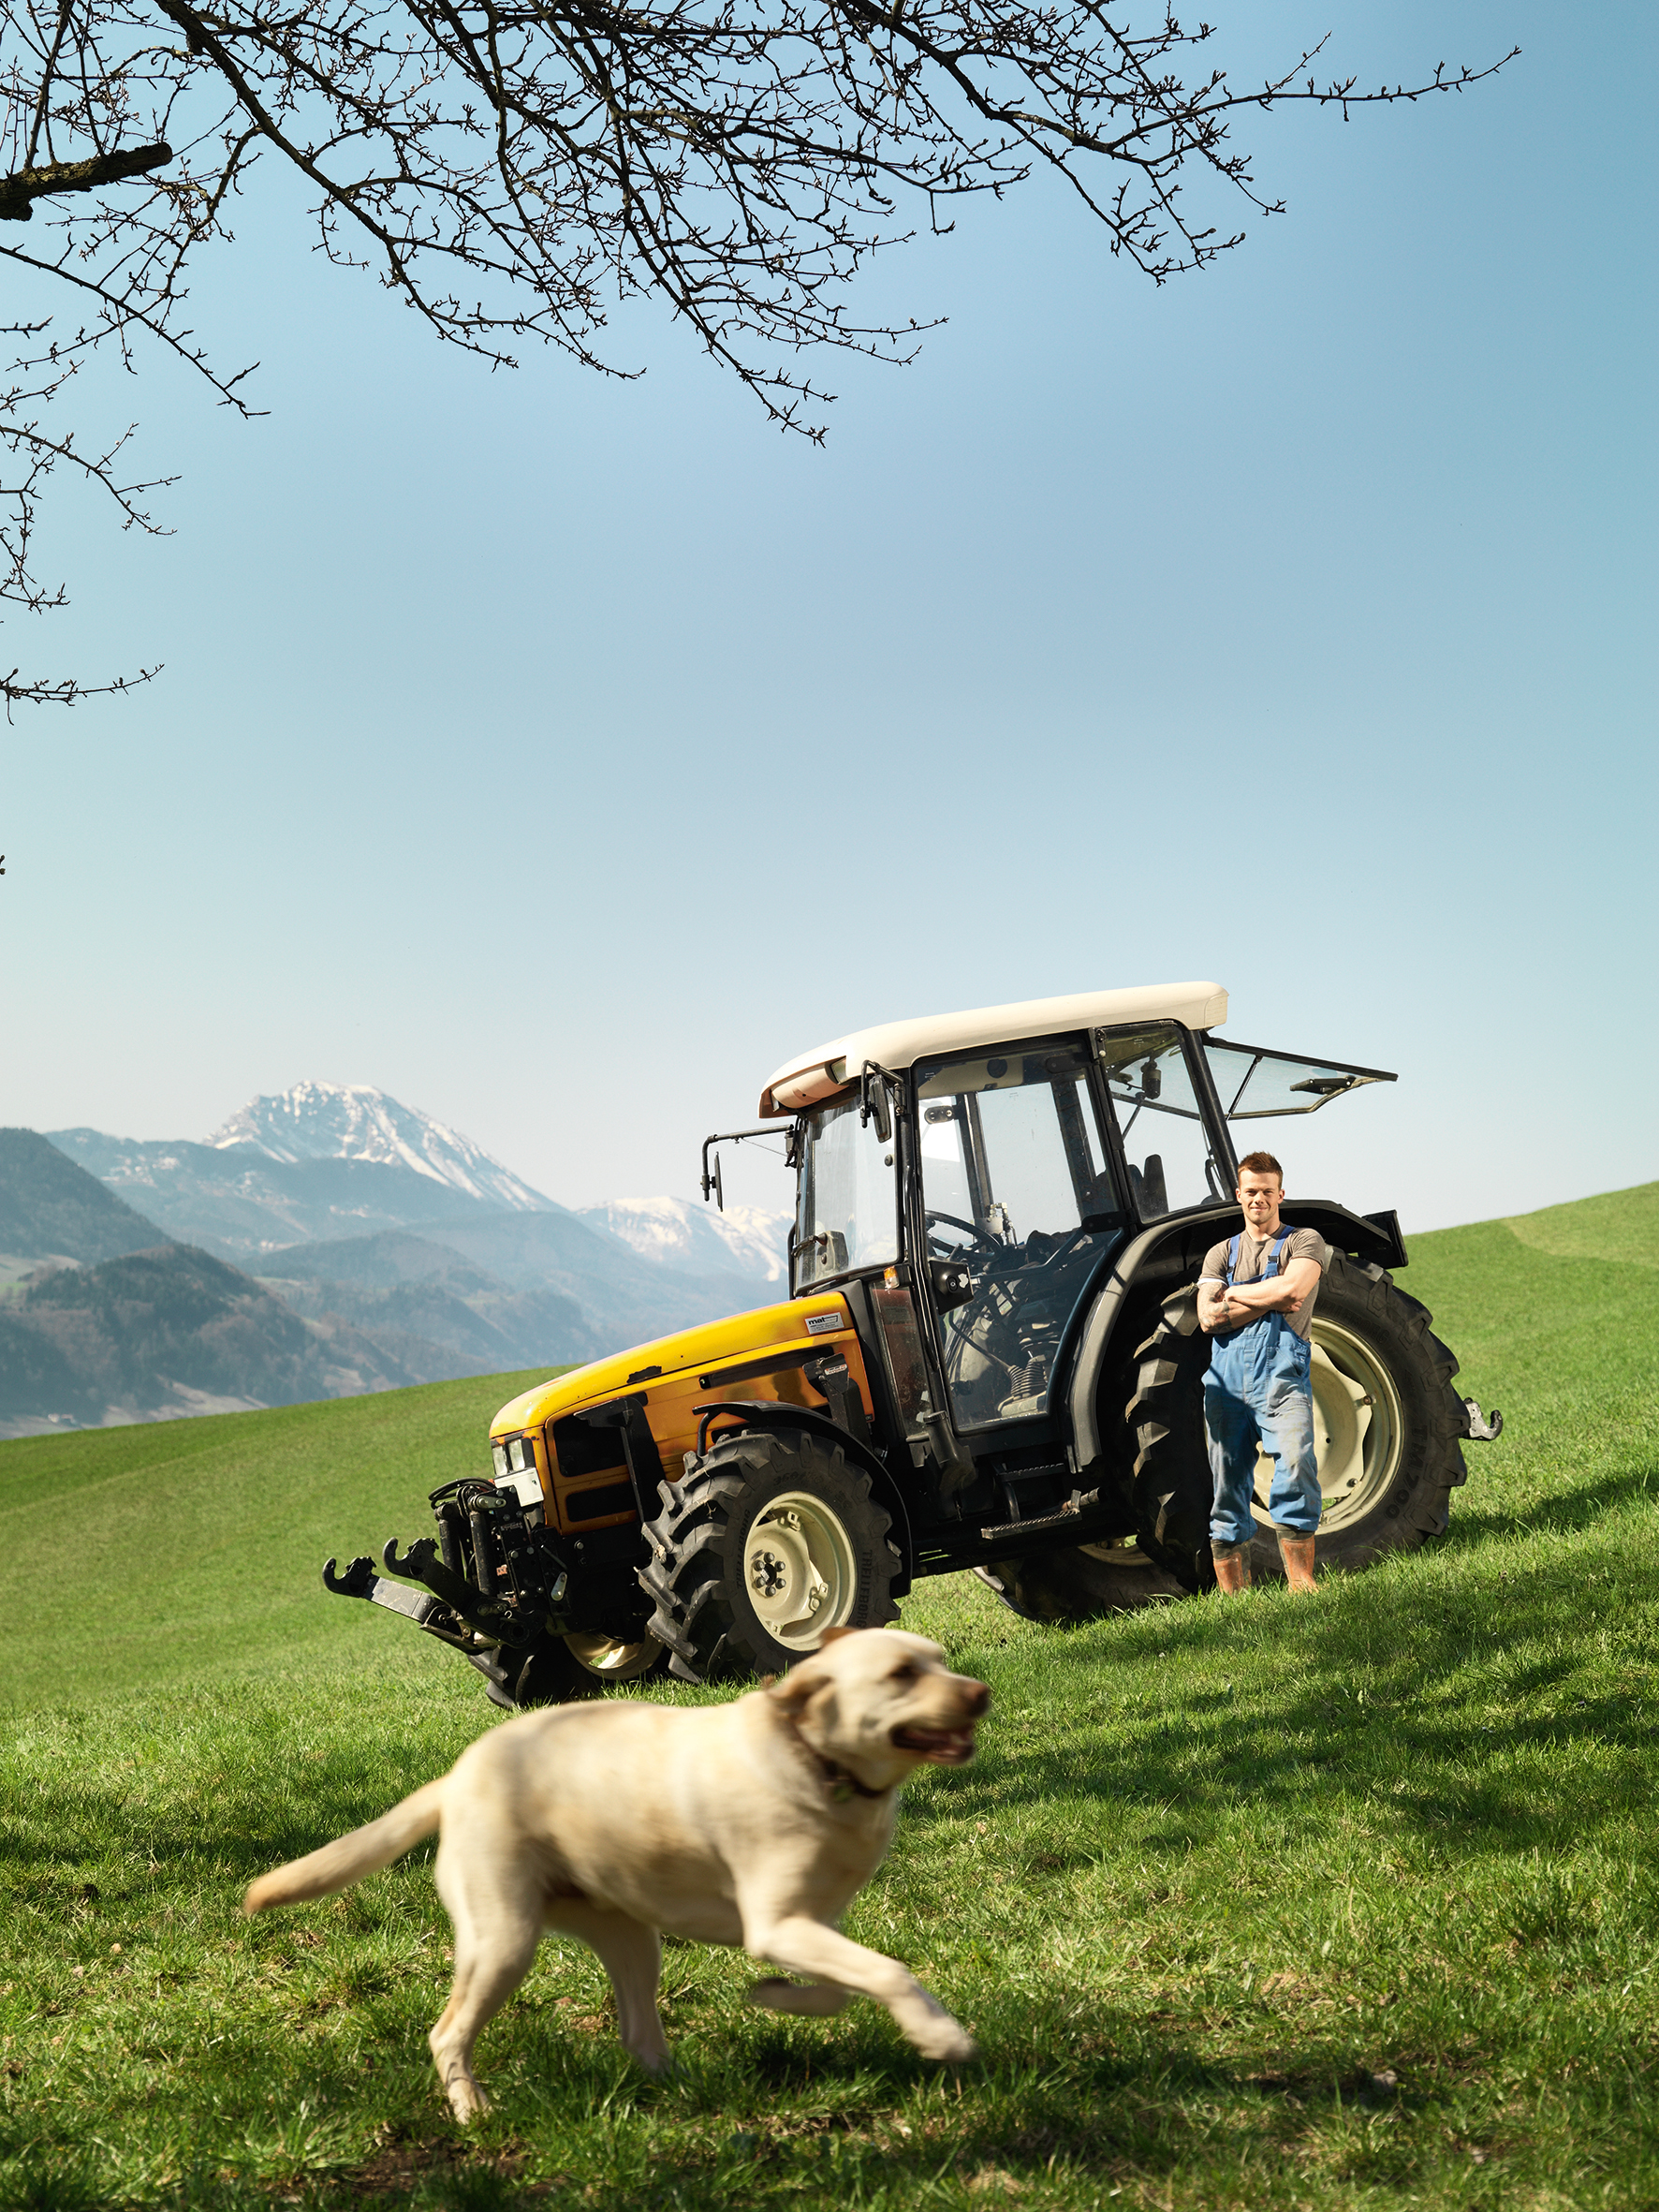 Farmer in front of a yellow tractor